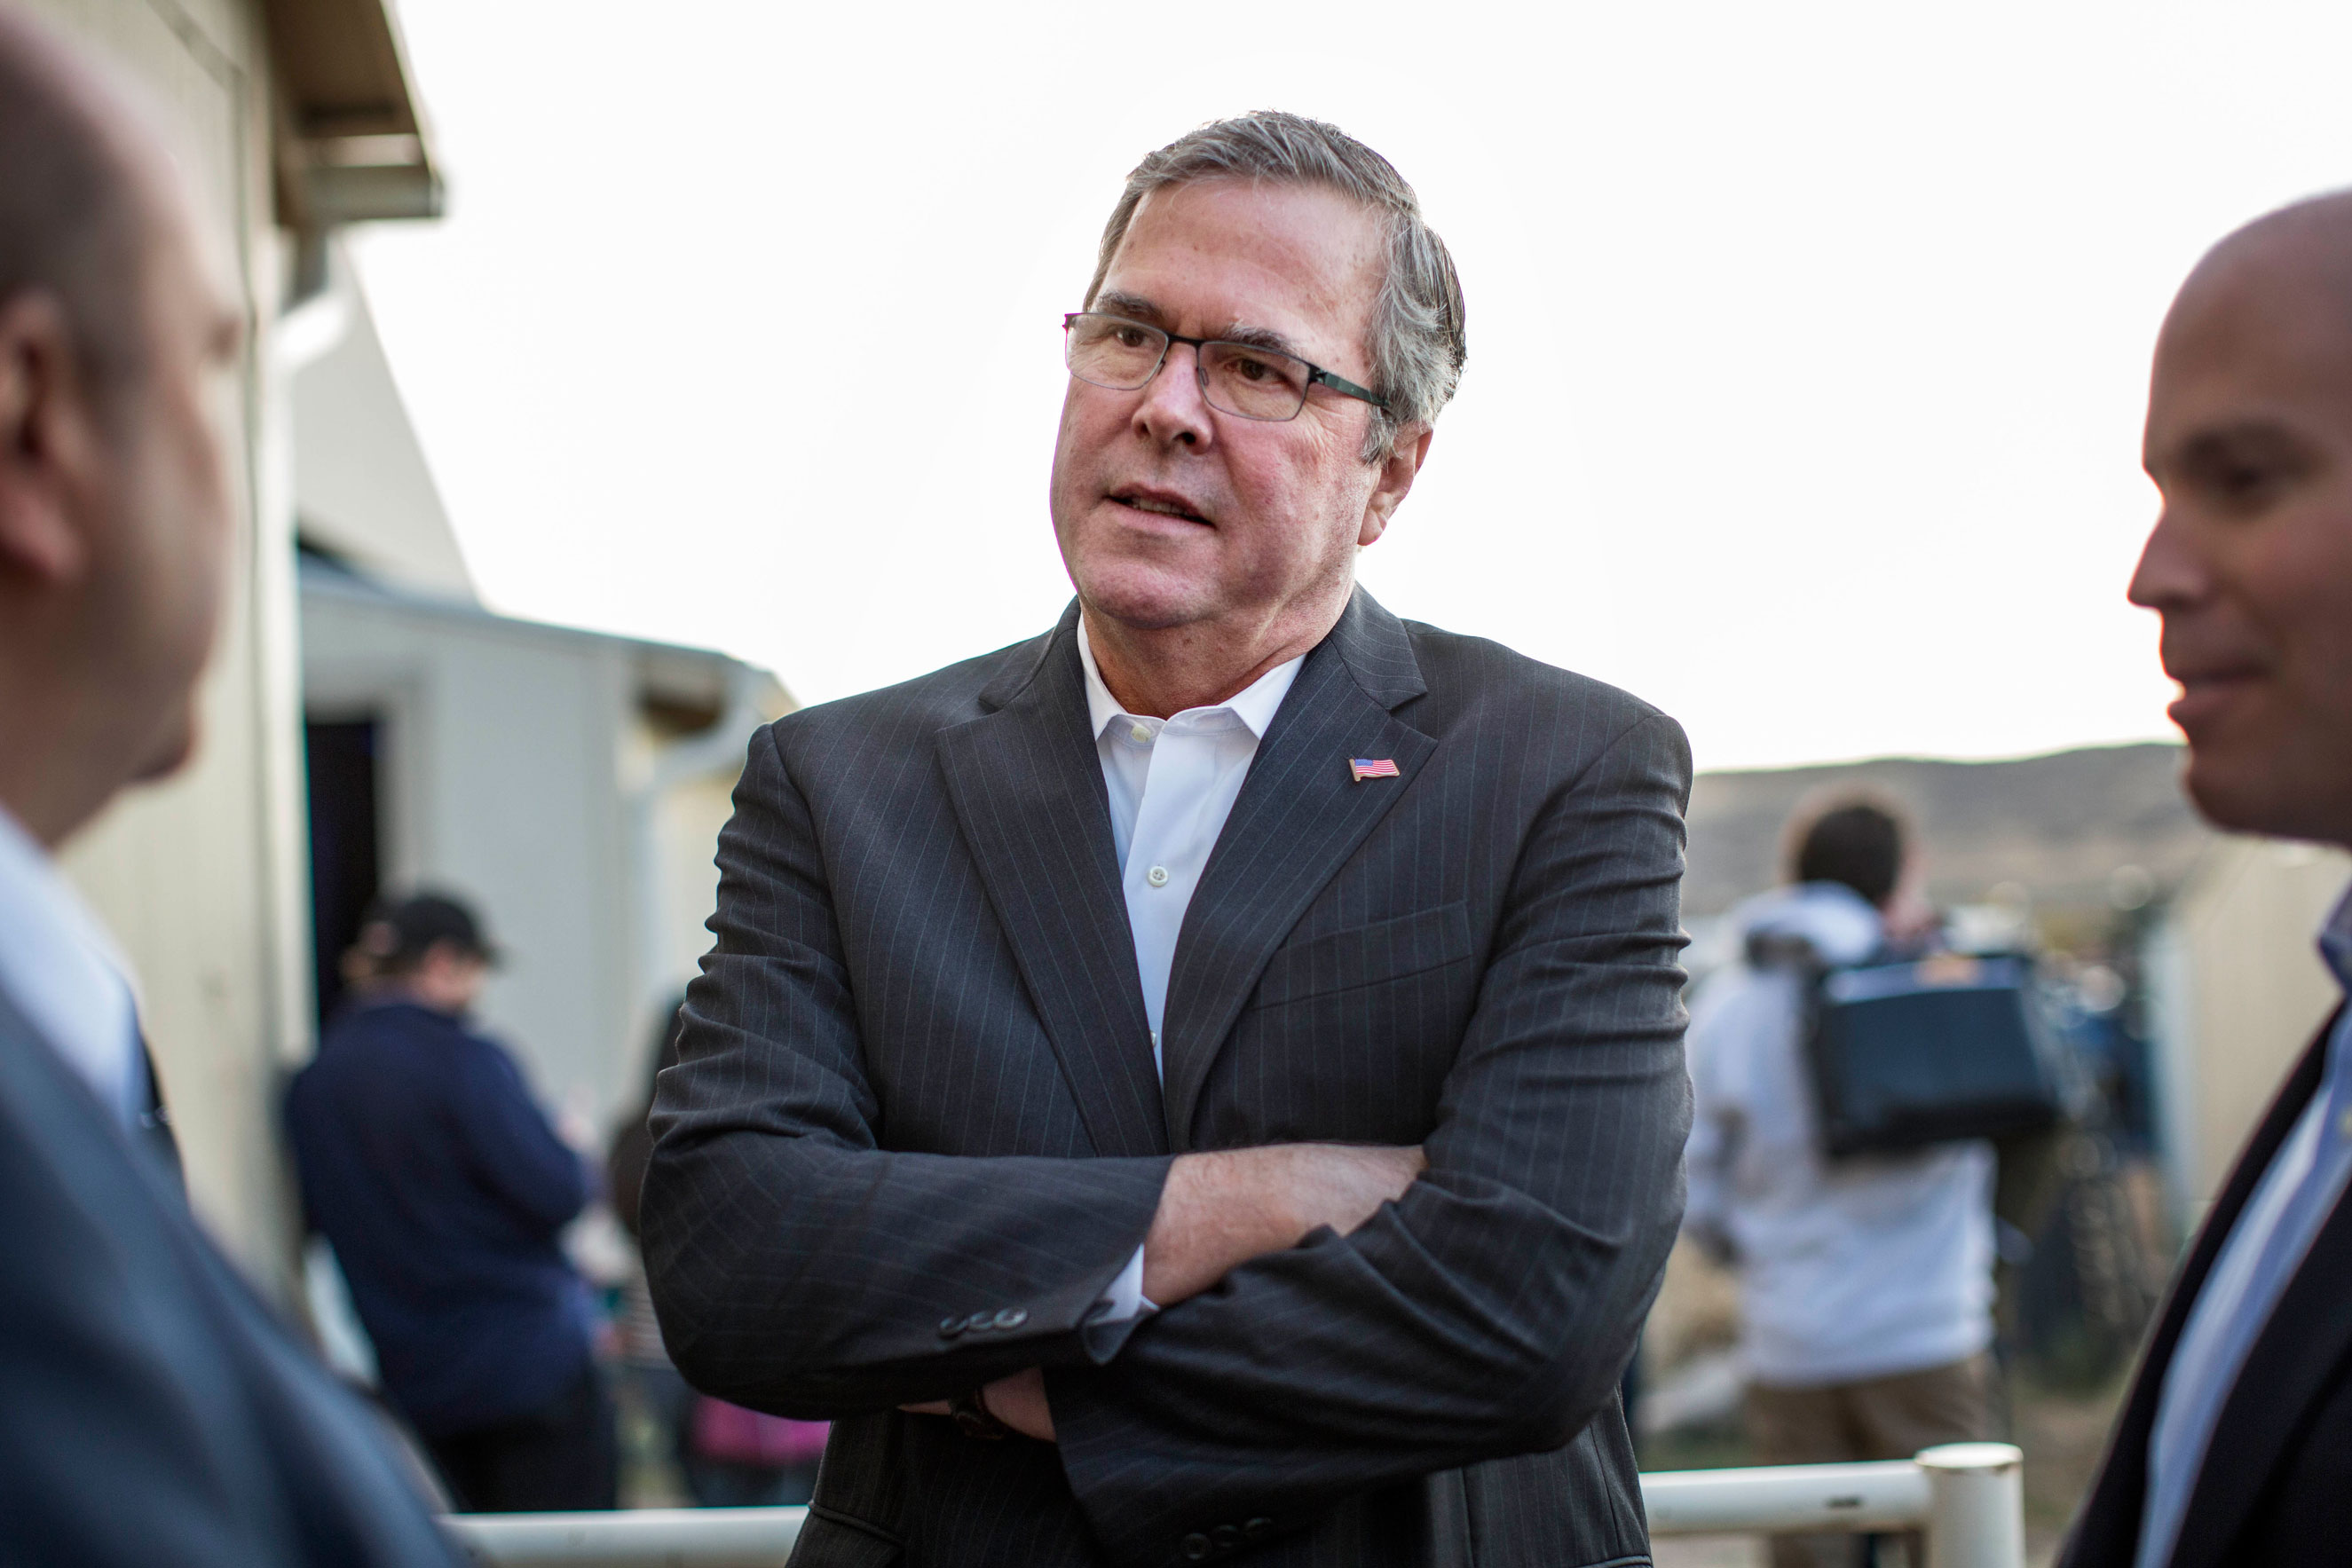 Jeb Bush at the Douglas County Fairgrounds in Castle Rock, Colo., on Oct. 29, 2014